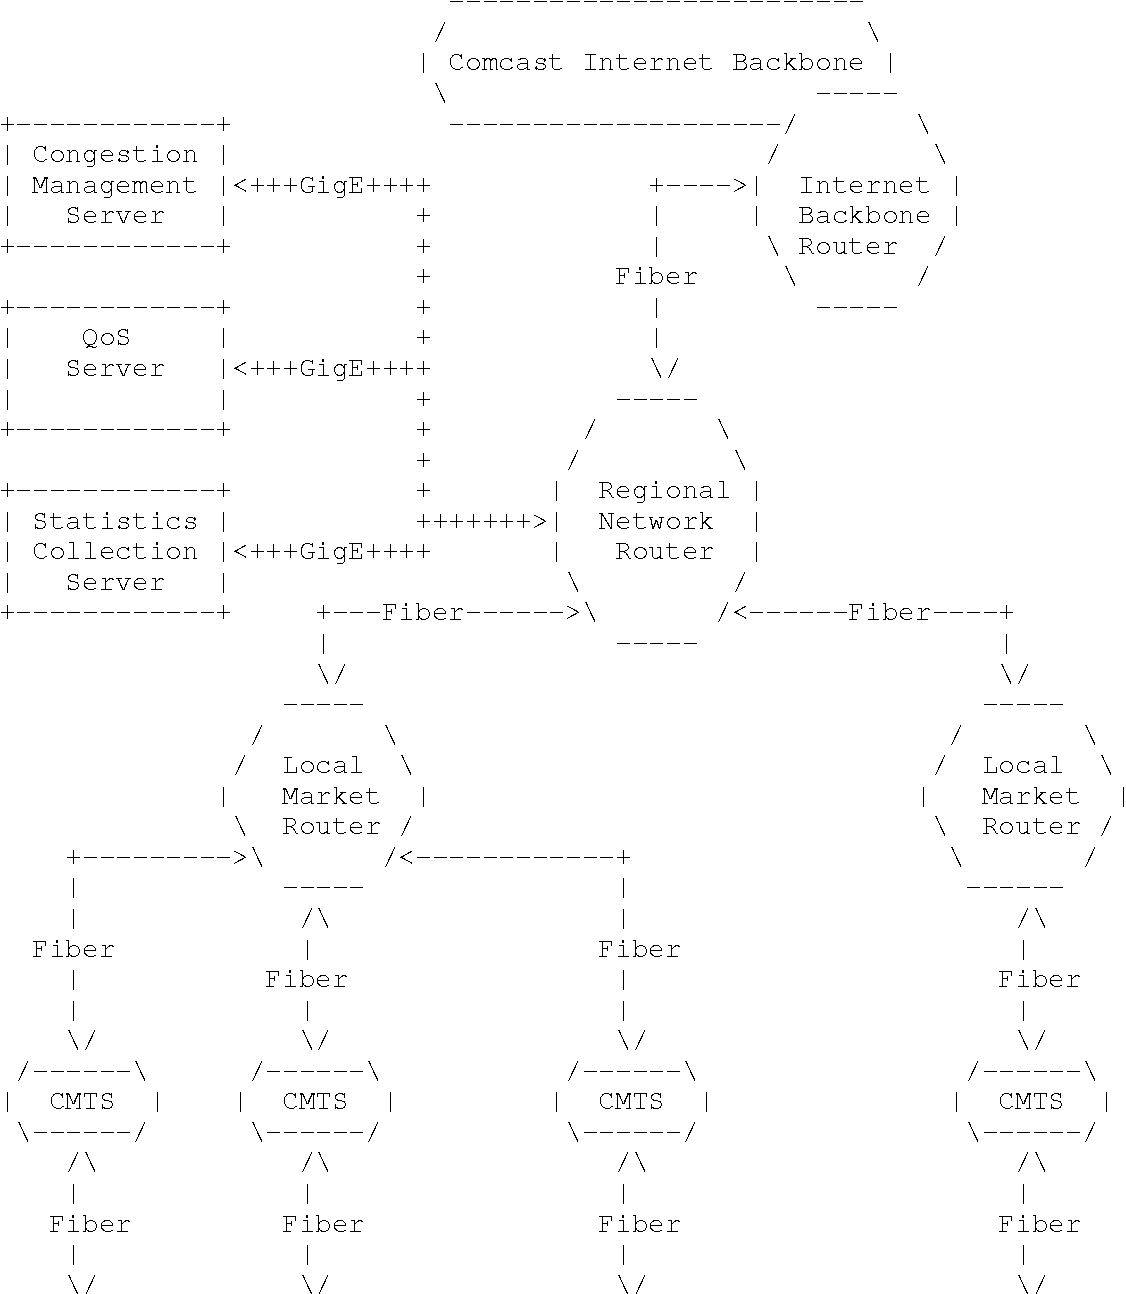 hight resolution of figure 1 simplified network diagram showing high level comcast